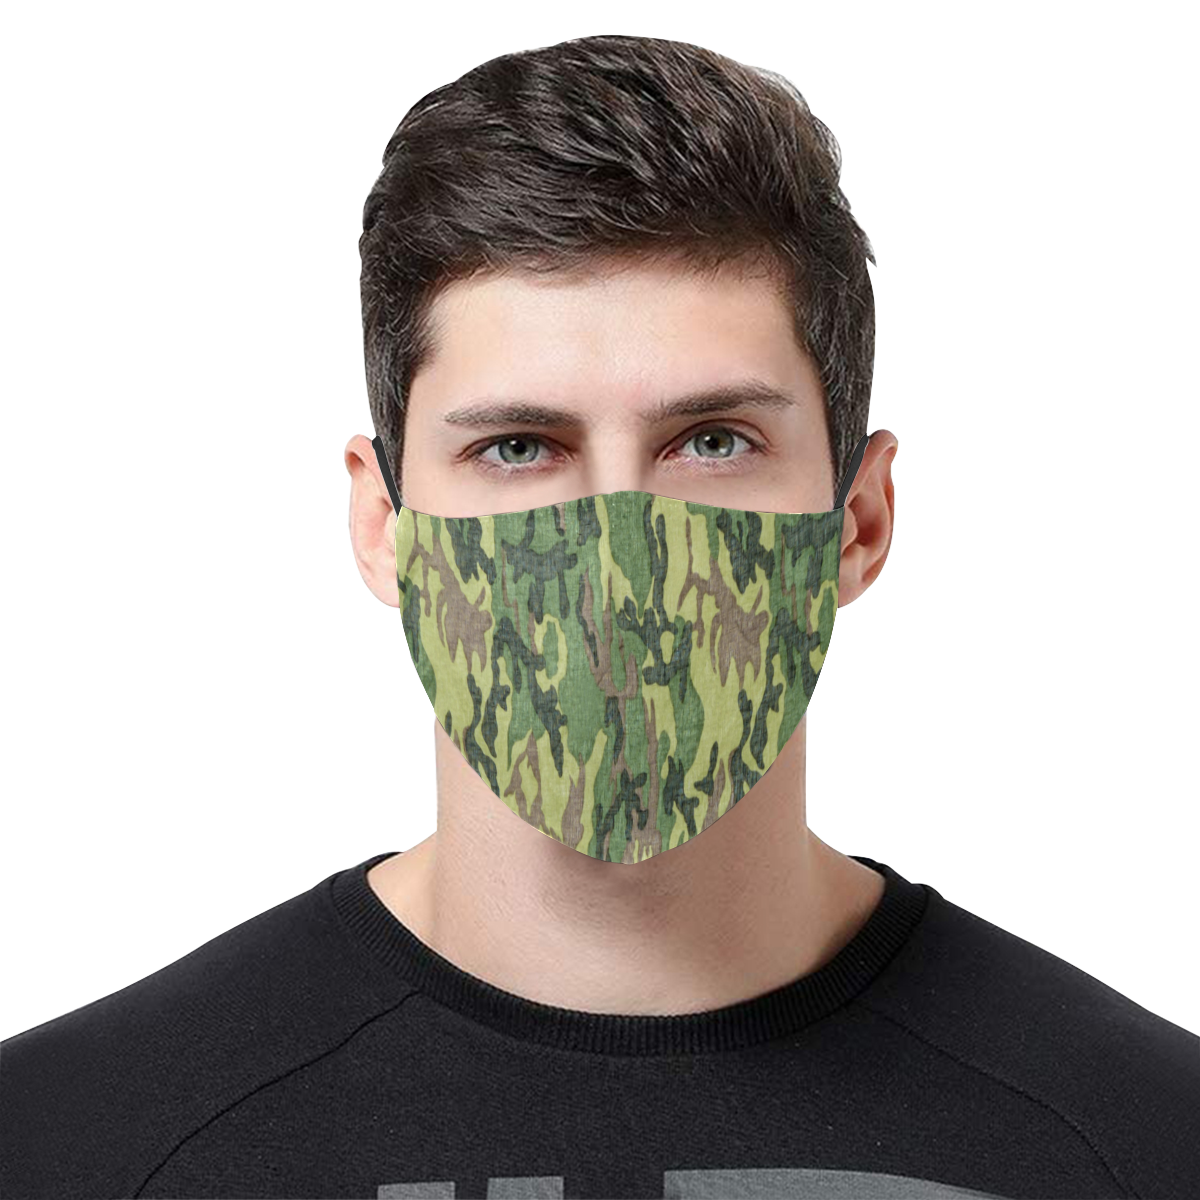 Military Camo Green Woodland Camouflage 3D Mouth Mask with Drawstring (Pack of 3) (Model M04)